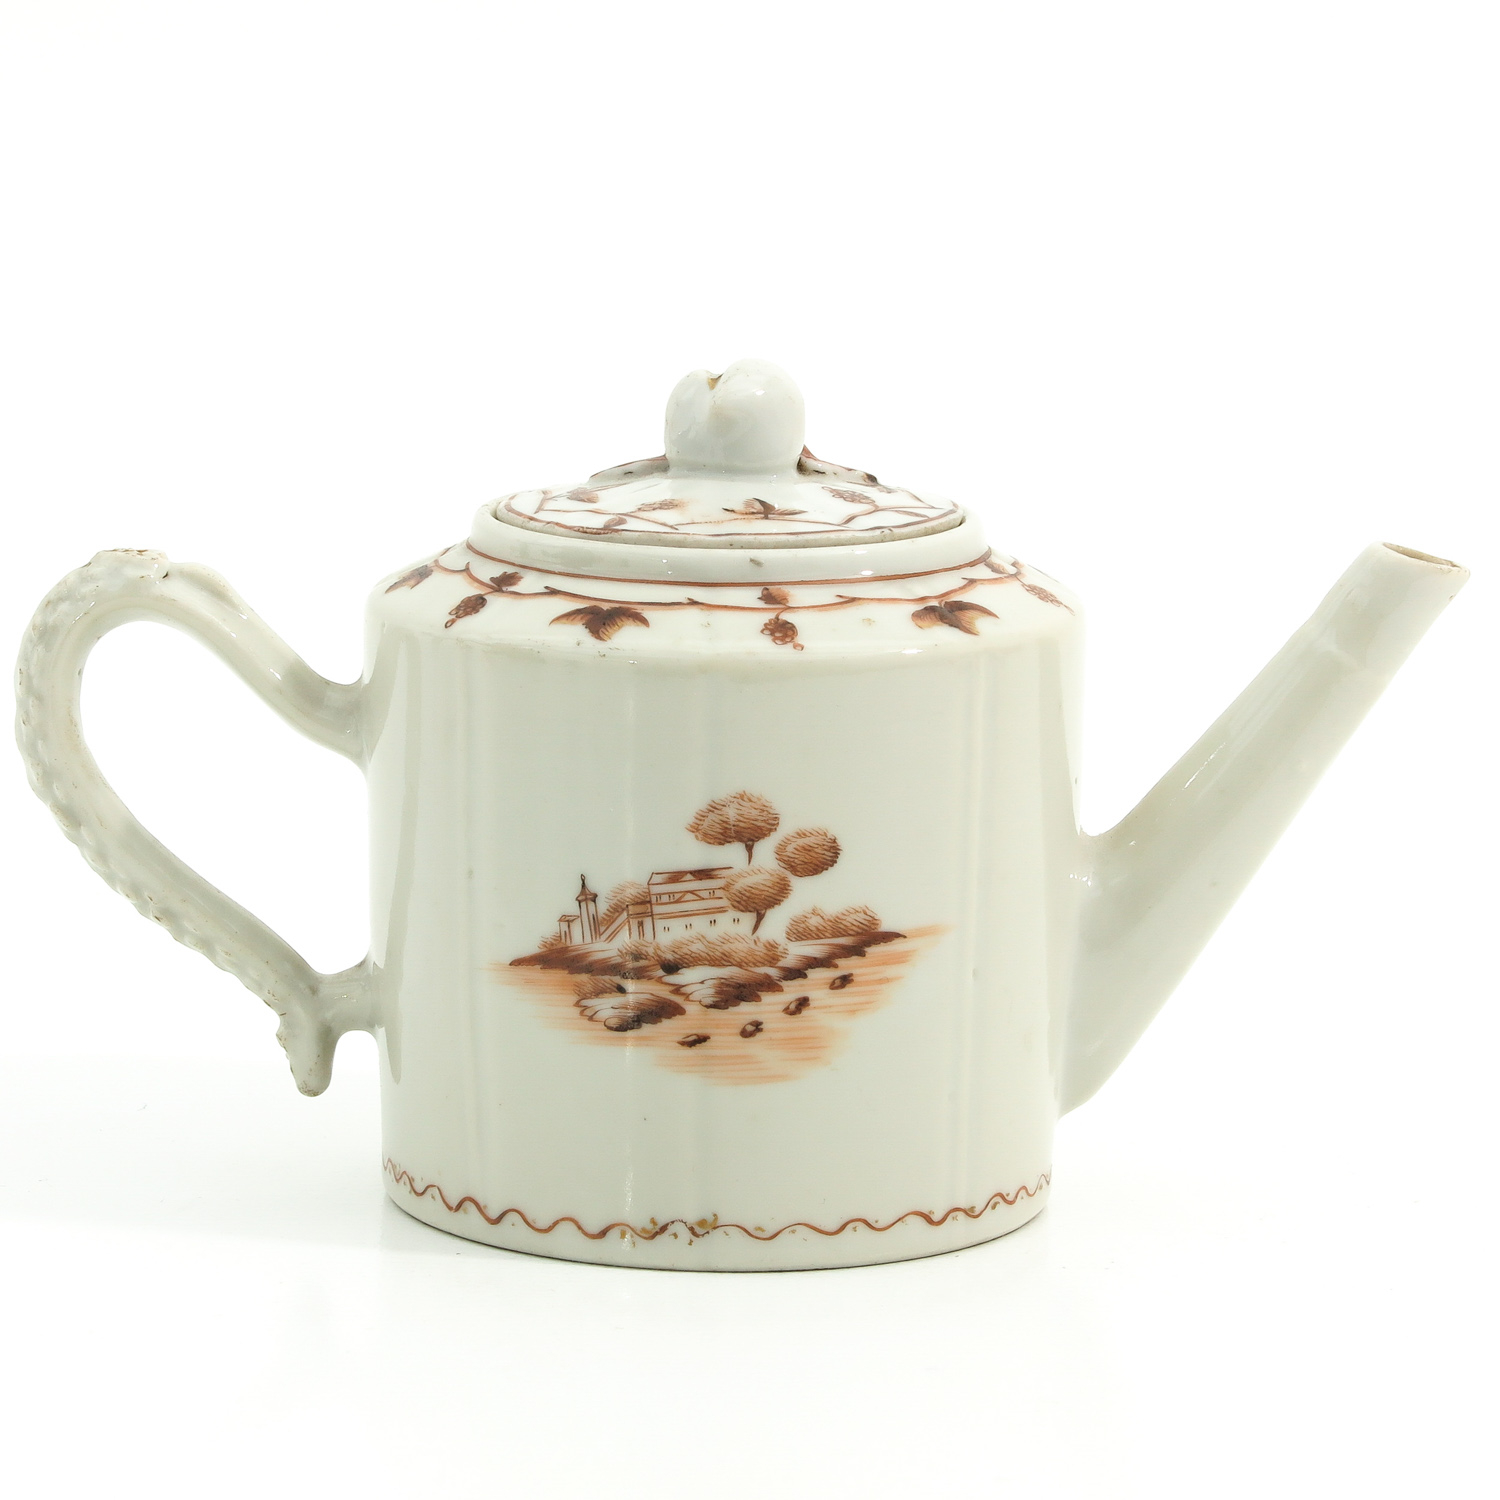 A Teapot and Small Dish - Image 3 of 9